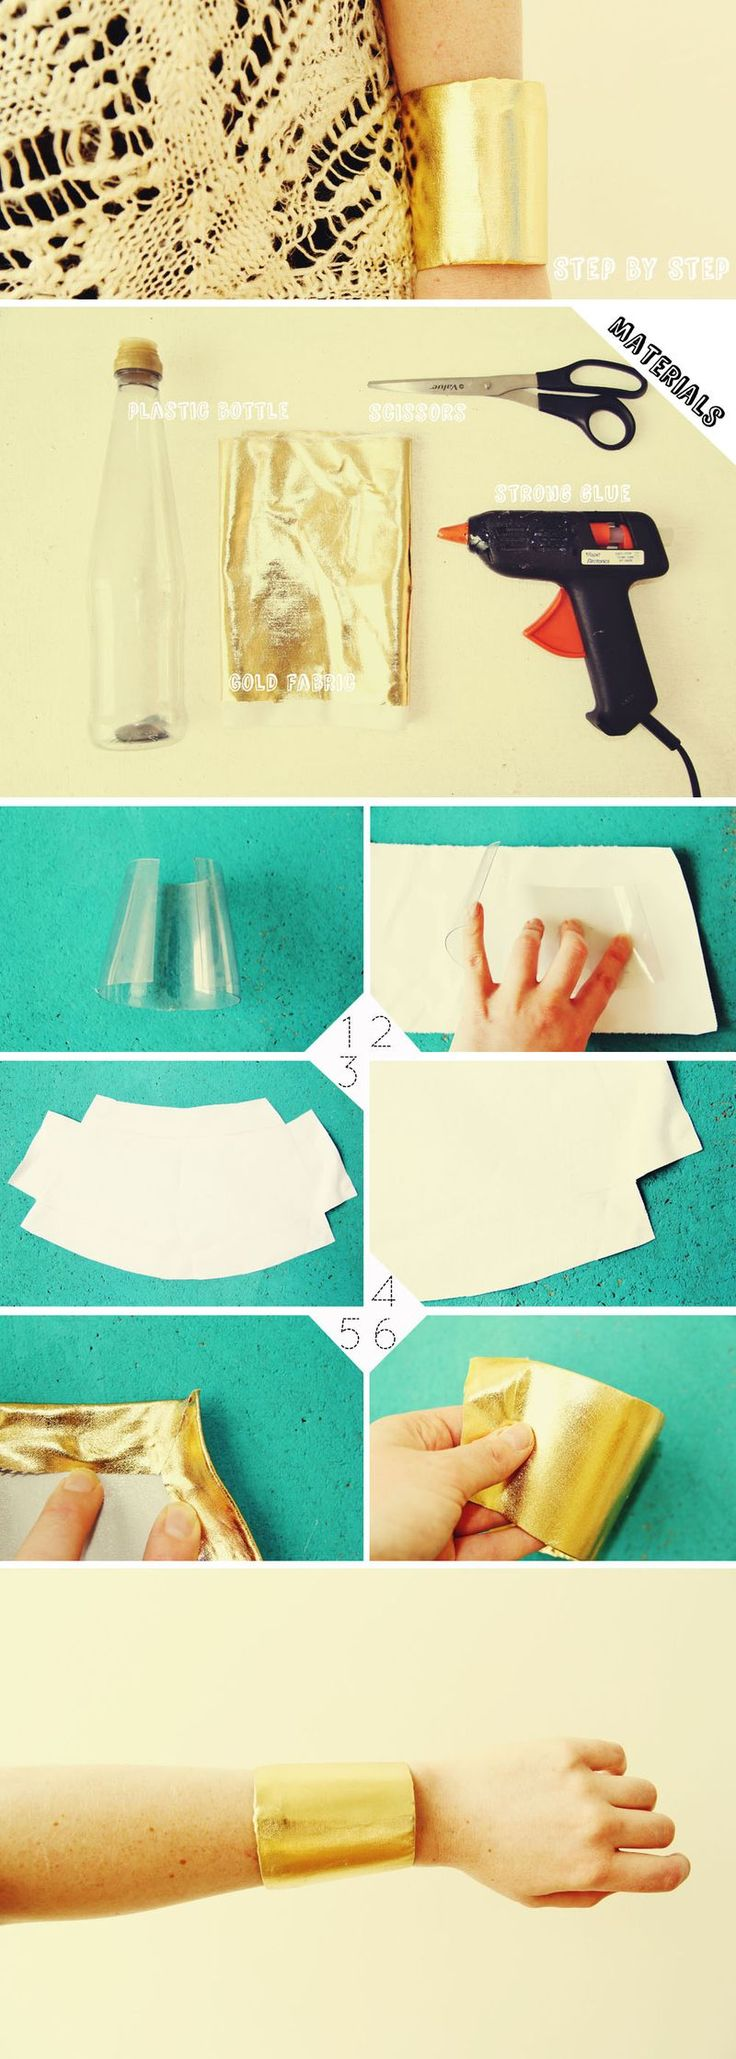 Gold Cuff DIY! - A plastic bottle for the base, gold fabric, scissors, strong glue.